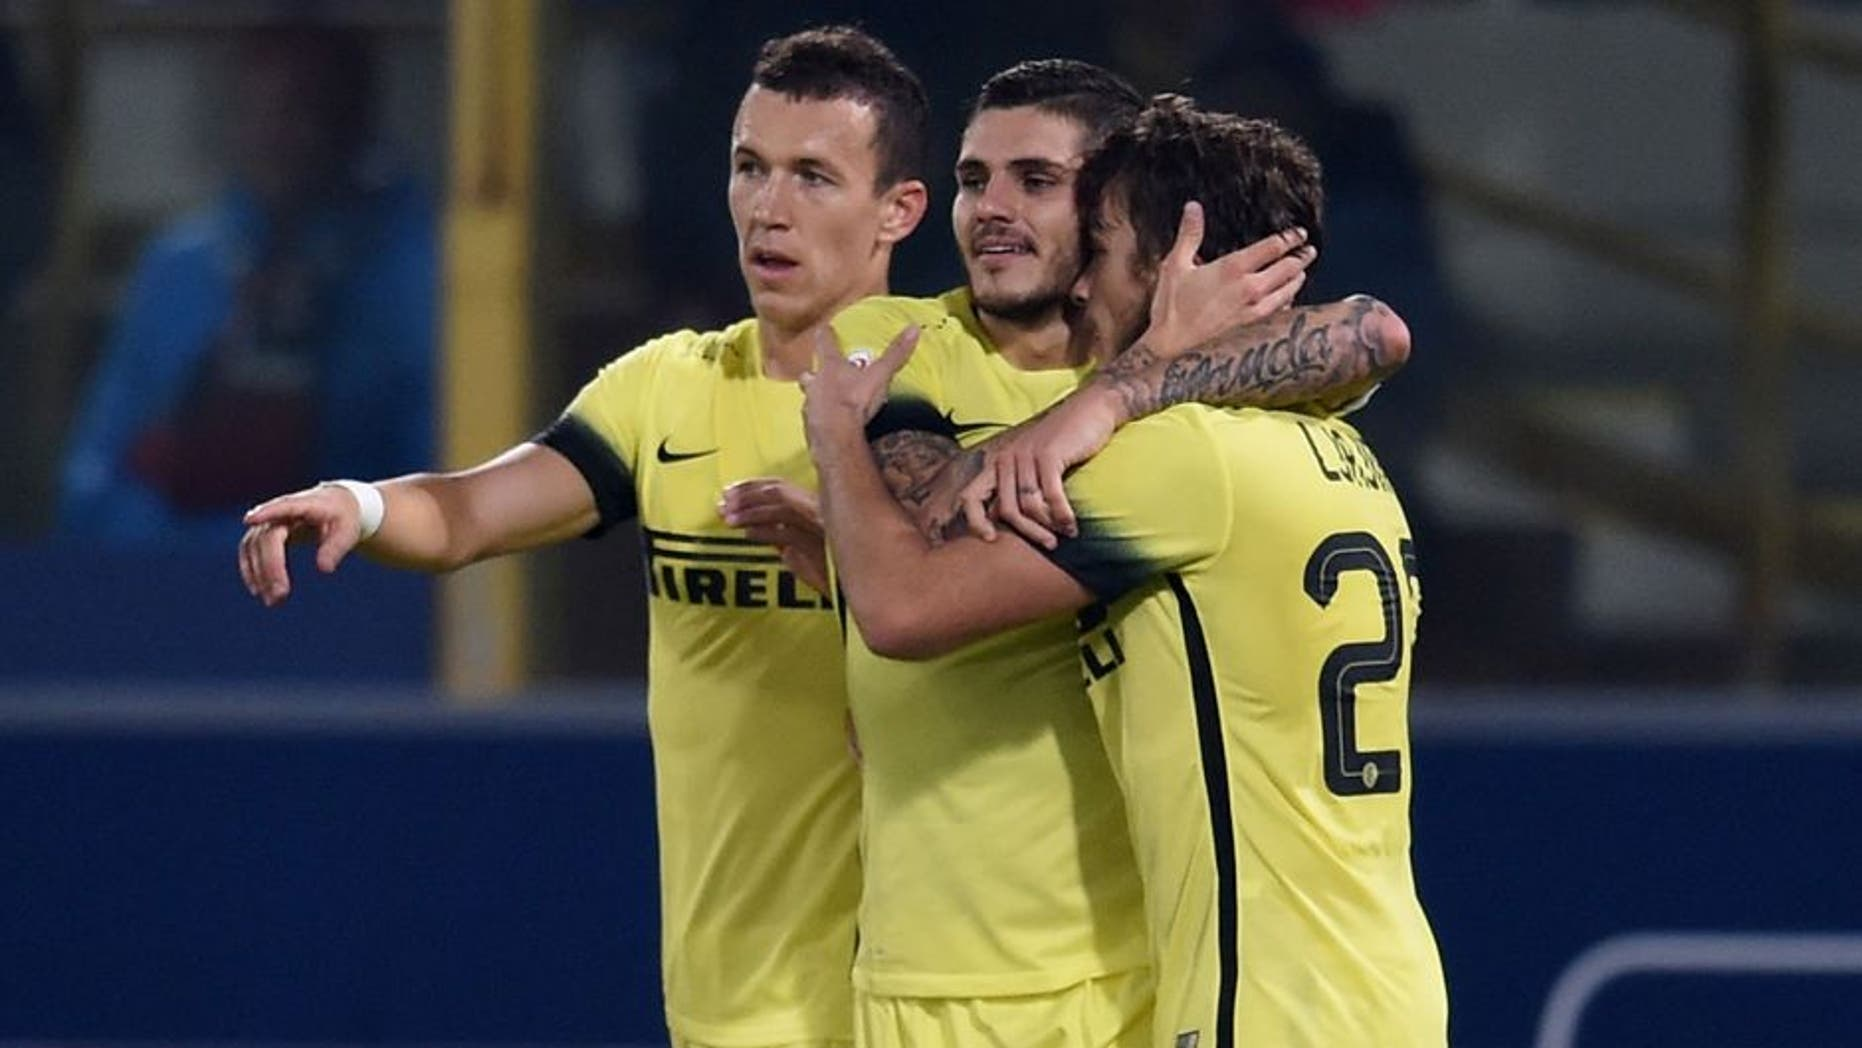 BOLOGNA, ITALY - OCTOBER 28: Mauro Icardi of FC Internazionale (C) celebrates after scoring the opening goal during the Serie A match between Bologna FC and FC Internazionale Milano at Stadio Renato Dall'Ara on October 28, 2015 in Bologna, Italy. (Photo by Claudio Villa - Inter/Inter via Getty Images)